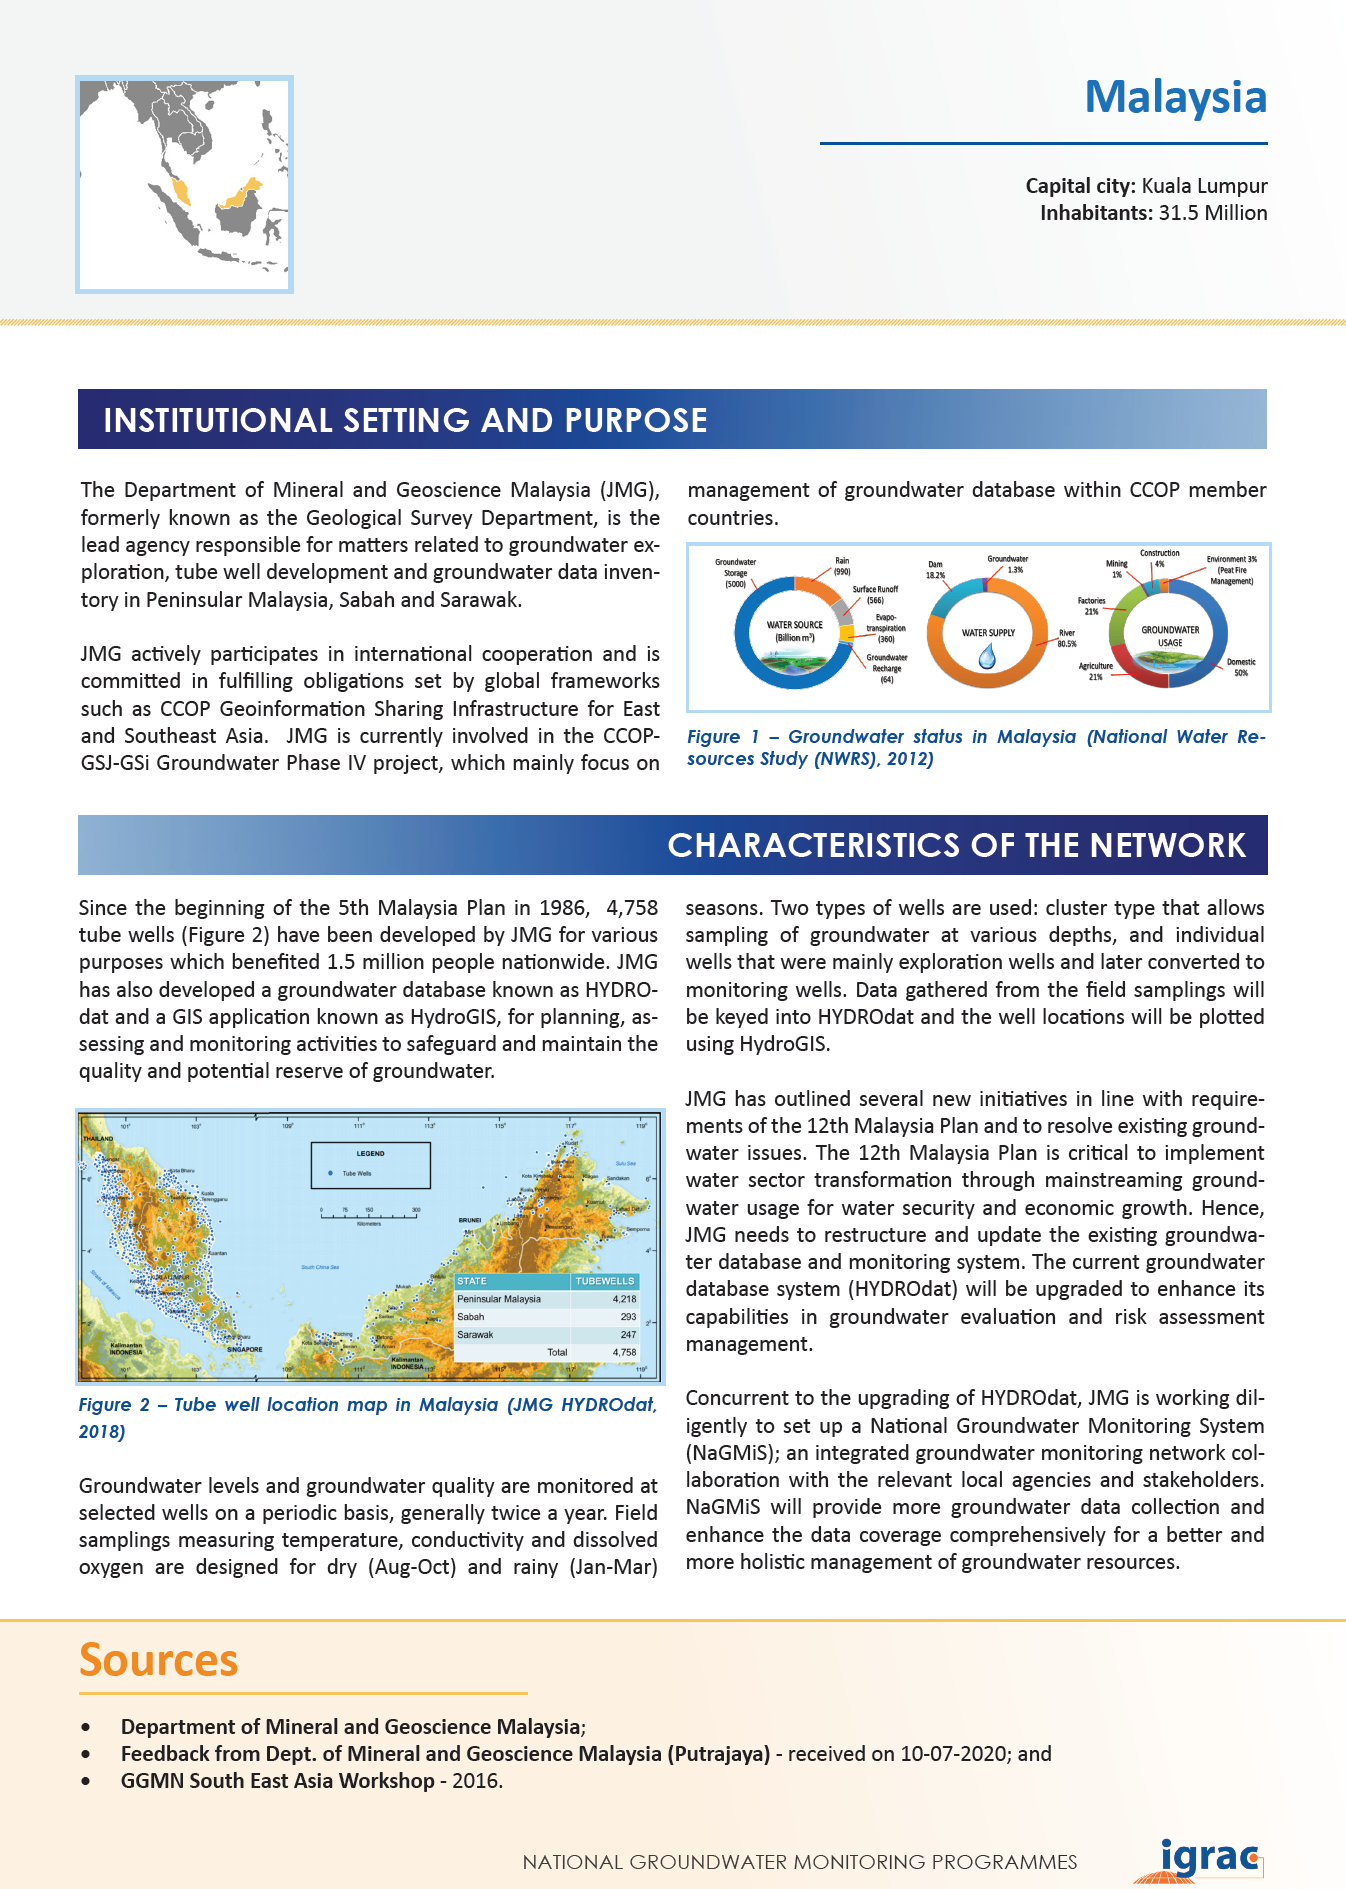 Groundwater monitoring country profile - Malaysia